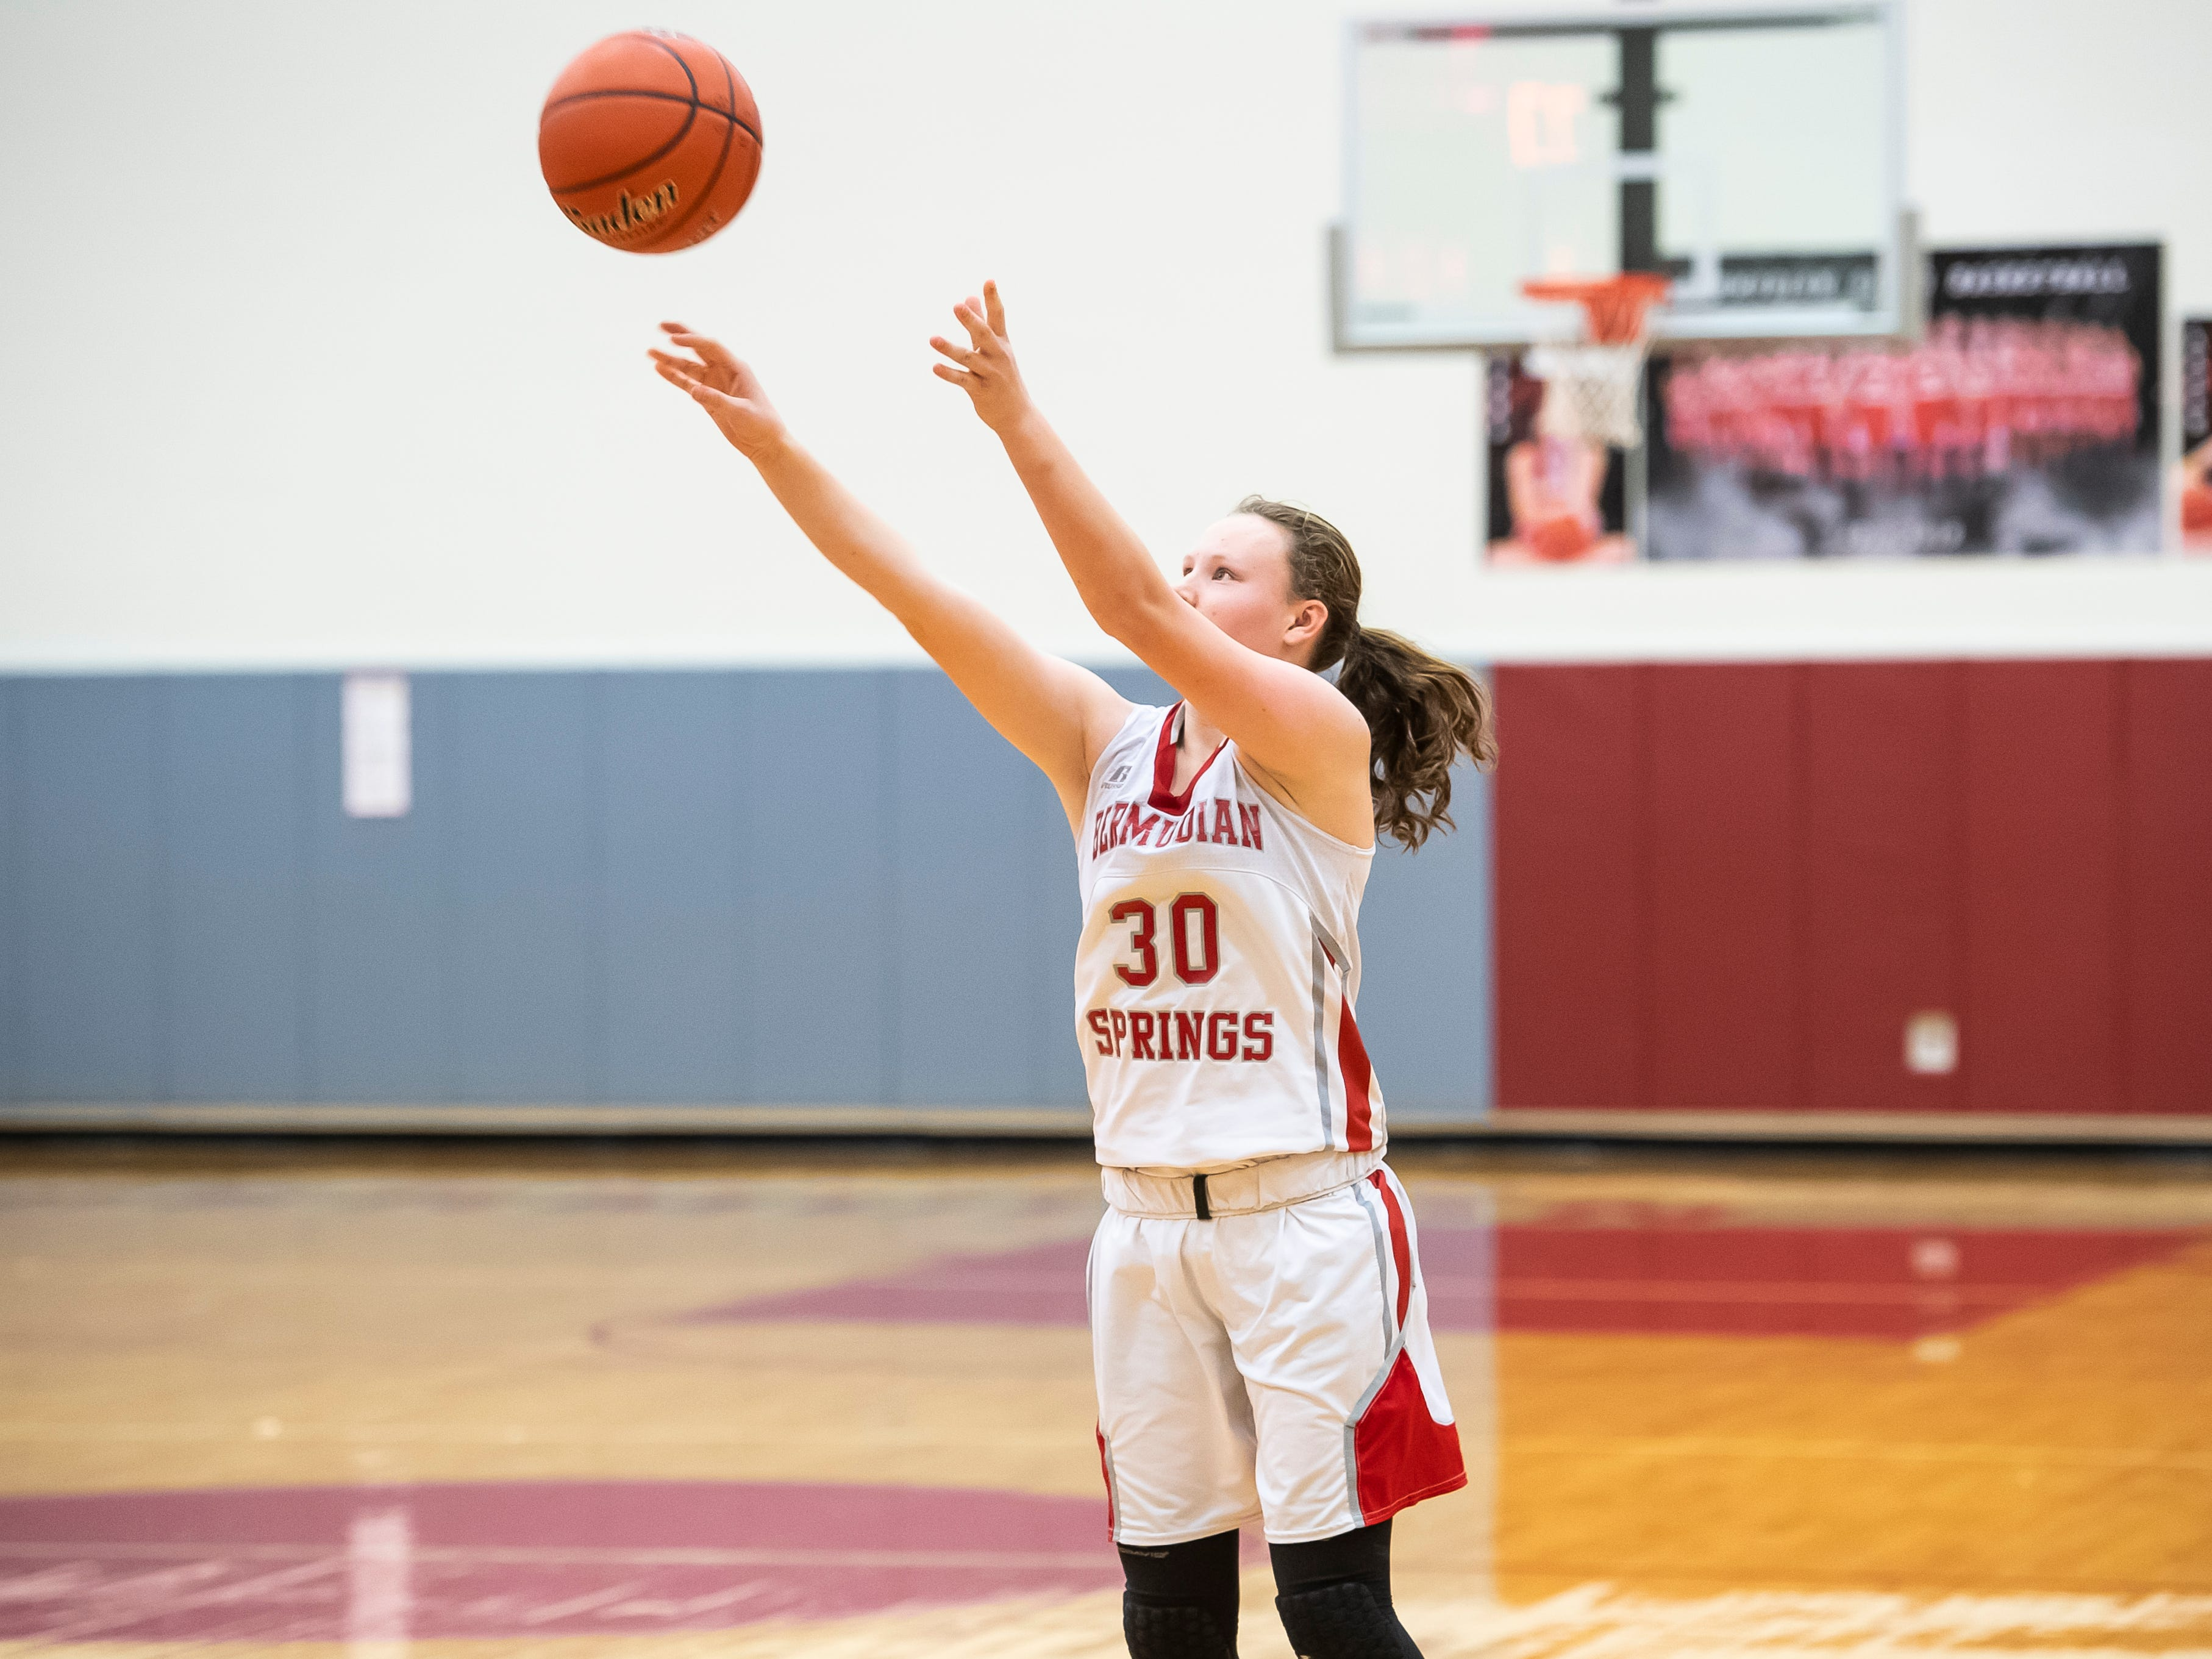 Bermudian Springs' Hanna Chenault drains a 3-pointer during play against York Country Day School at Bermudian Springs High School on Monday, January 14, 2019. The Eagles won 59-20.